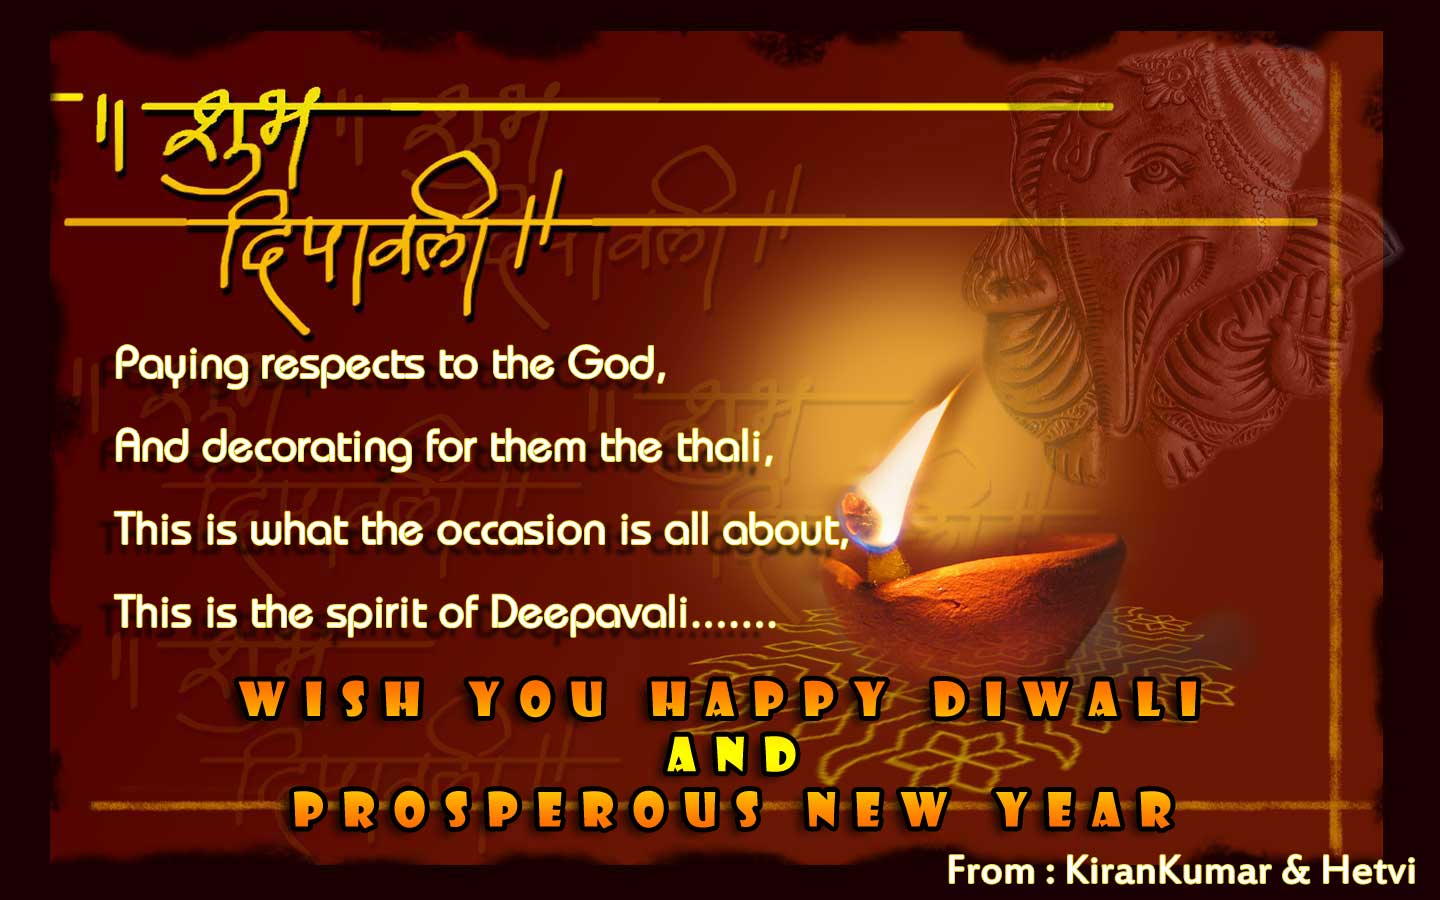 INTERESTING STORIES: Happy Diwali and New Year